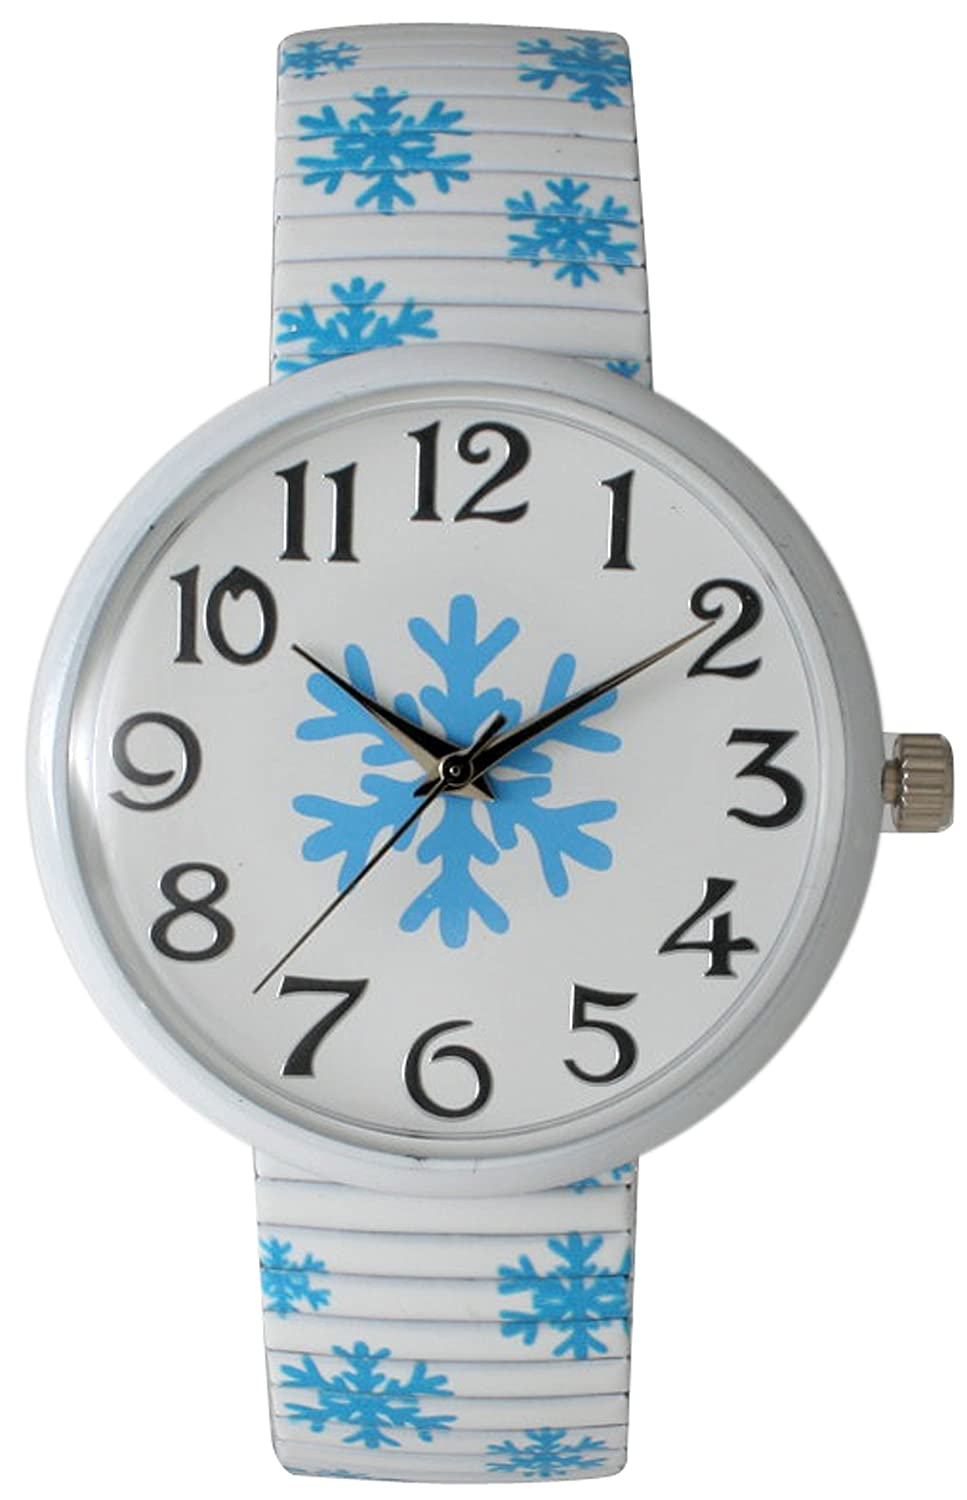 Amazon.com: Christmas Stretch Watch with Special Design on Band (Christmas Candy Green): Clothing